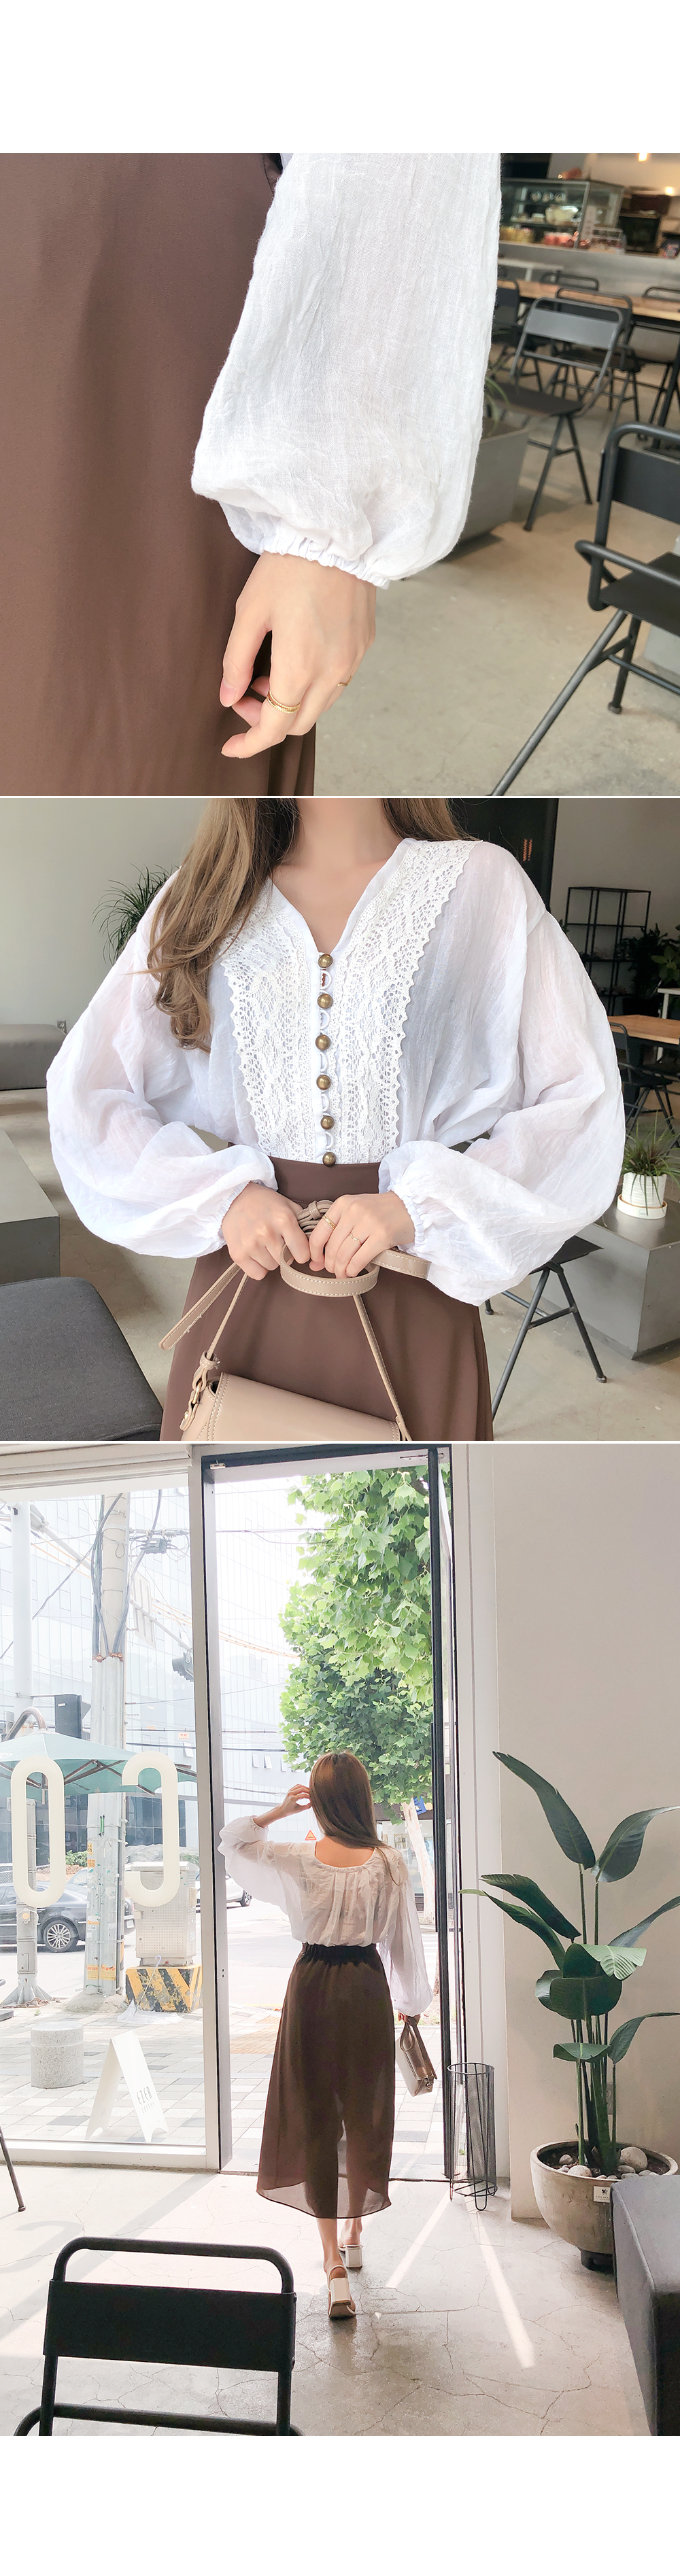 Fashionable mood lace blouse